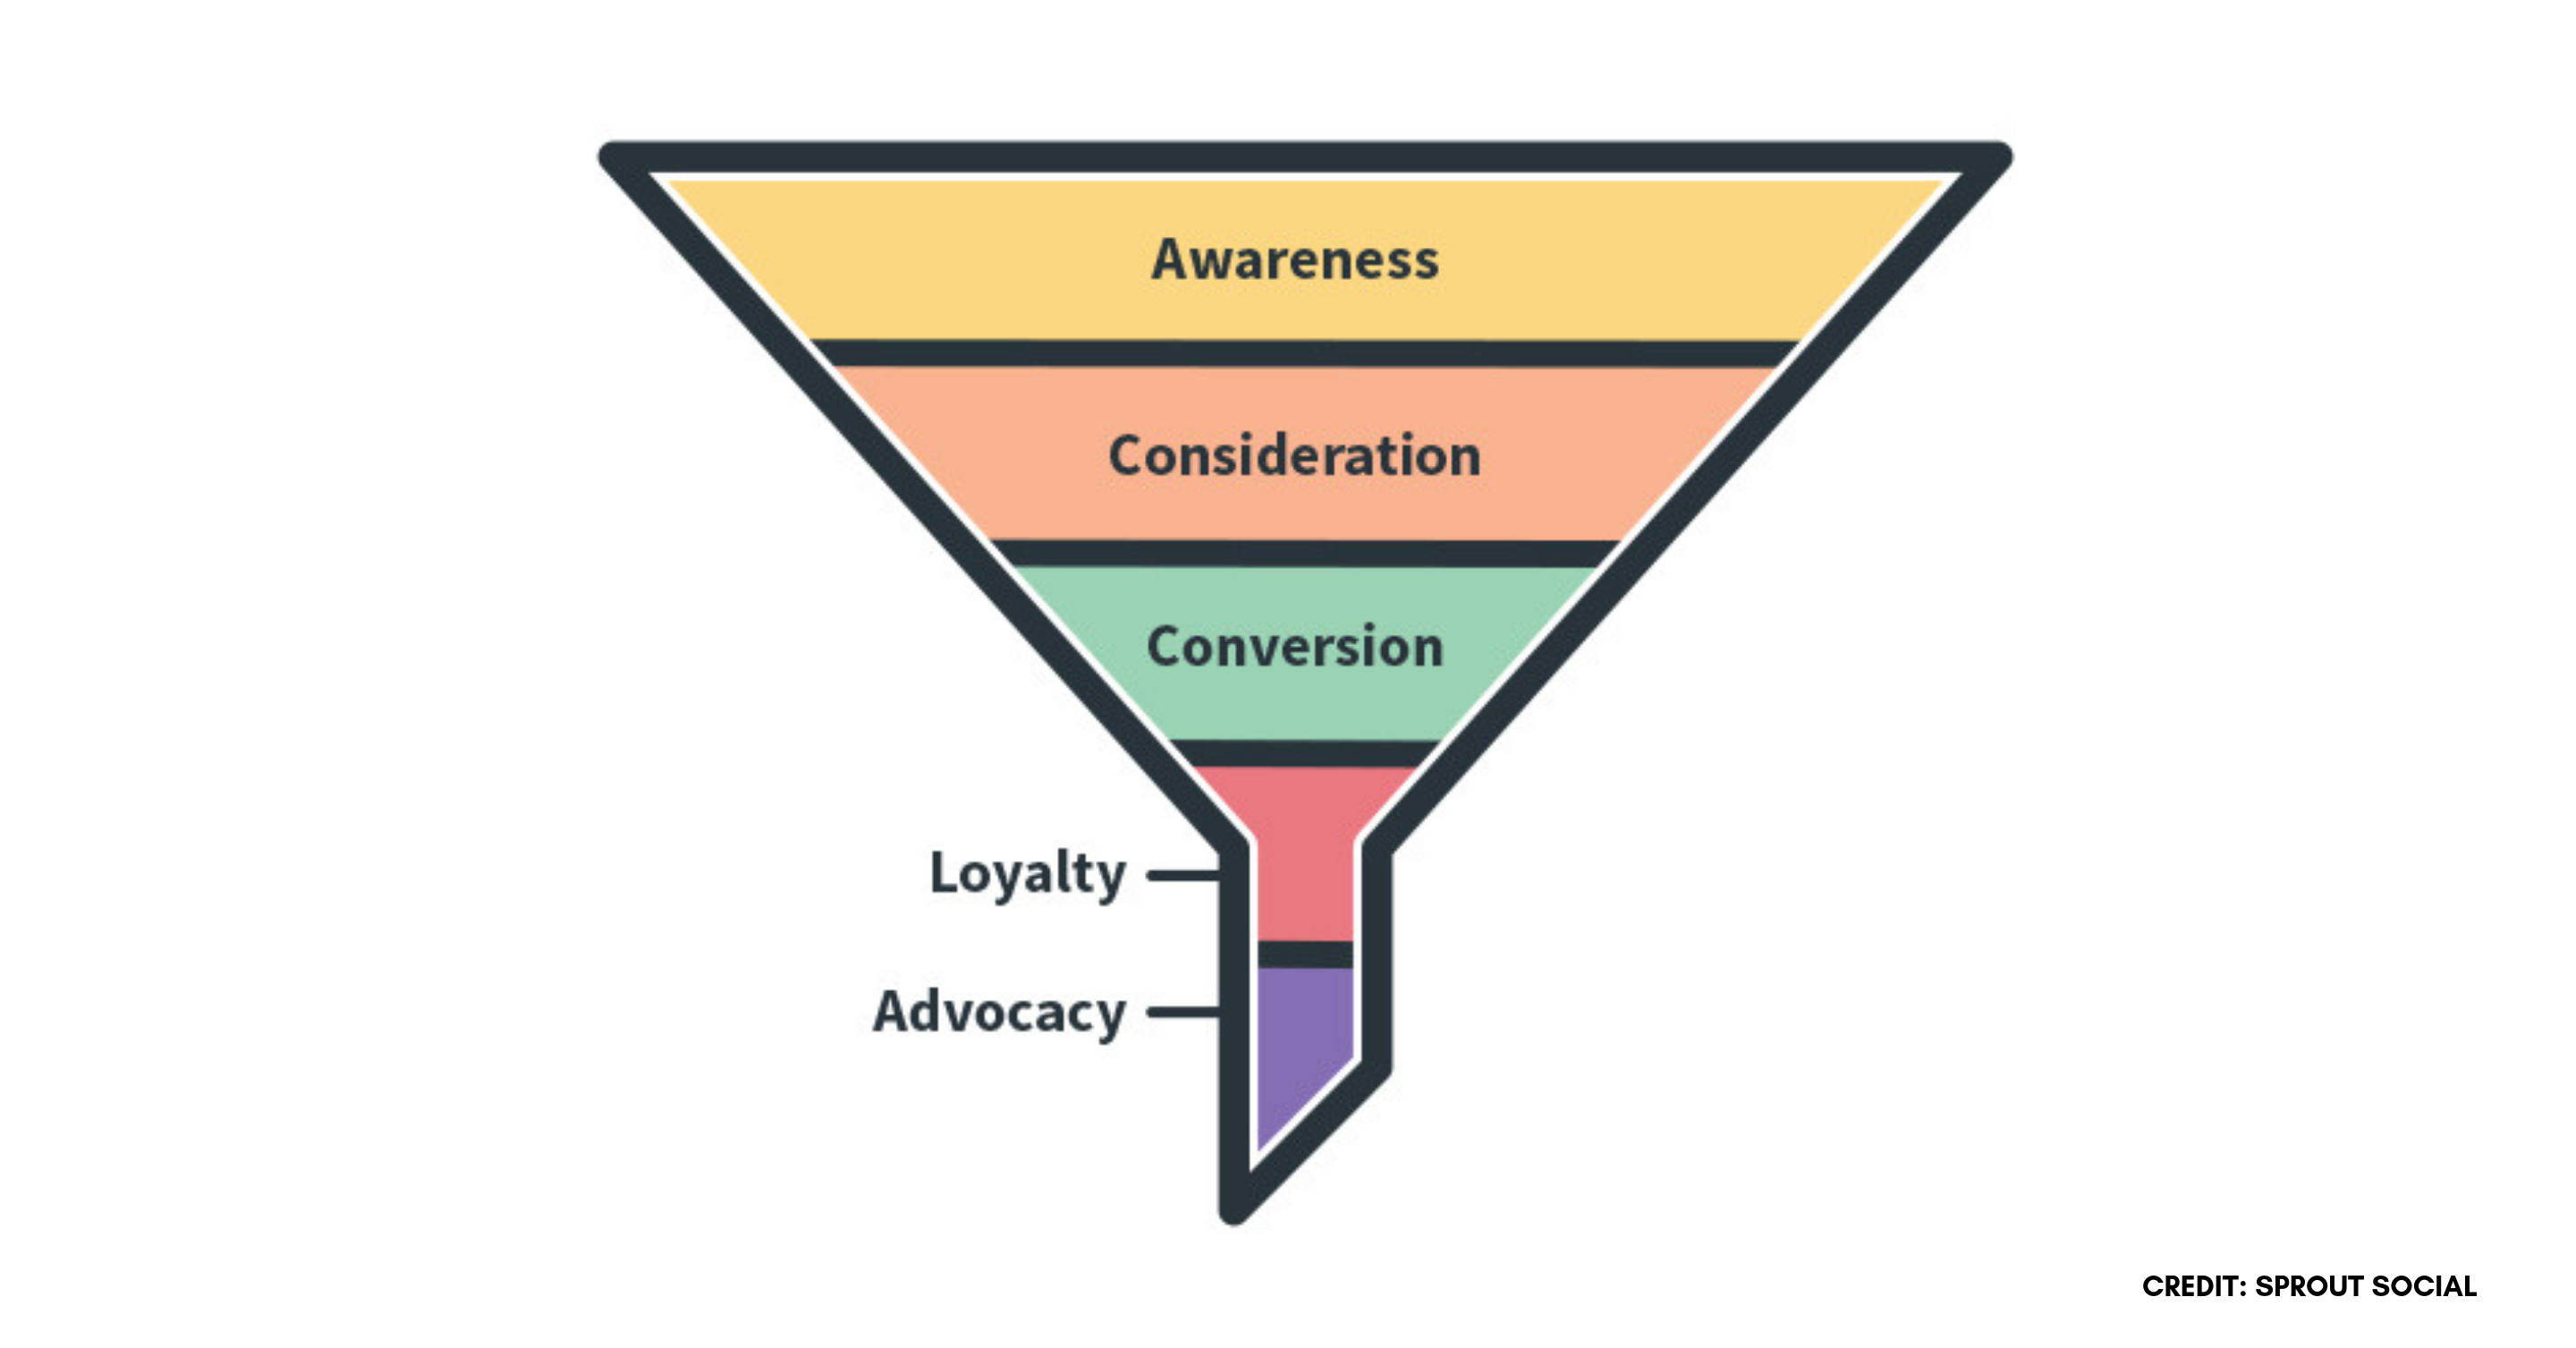 Graphic depicting the various stages of a social media marketing funnel